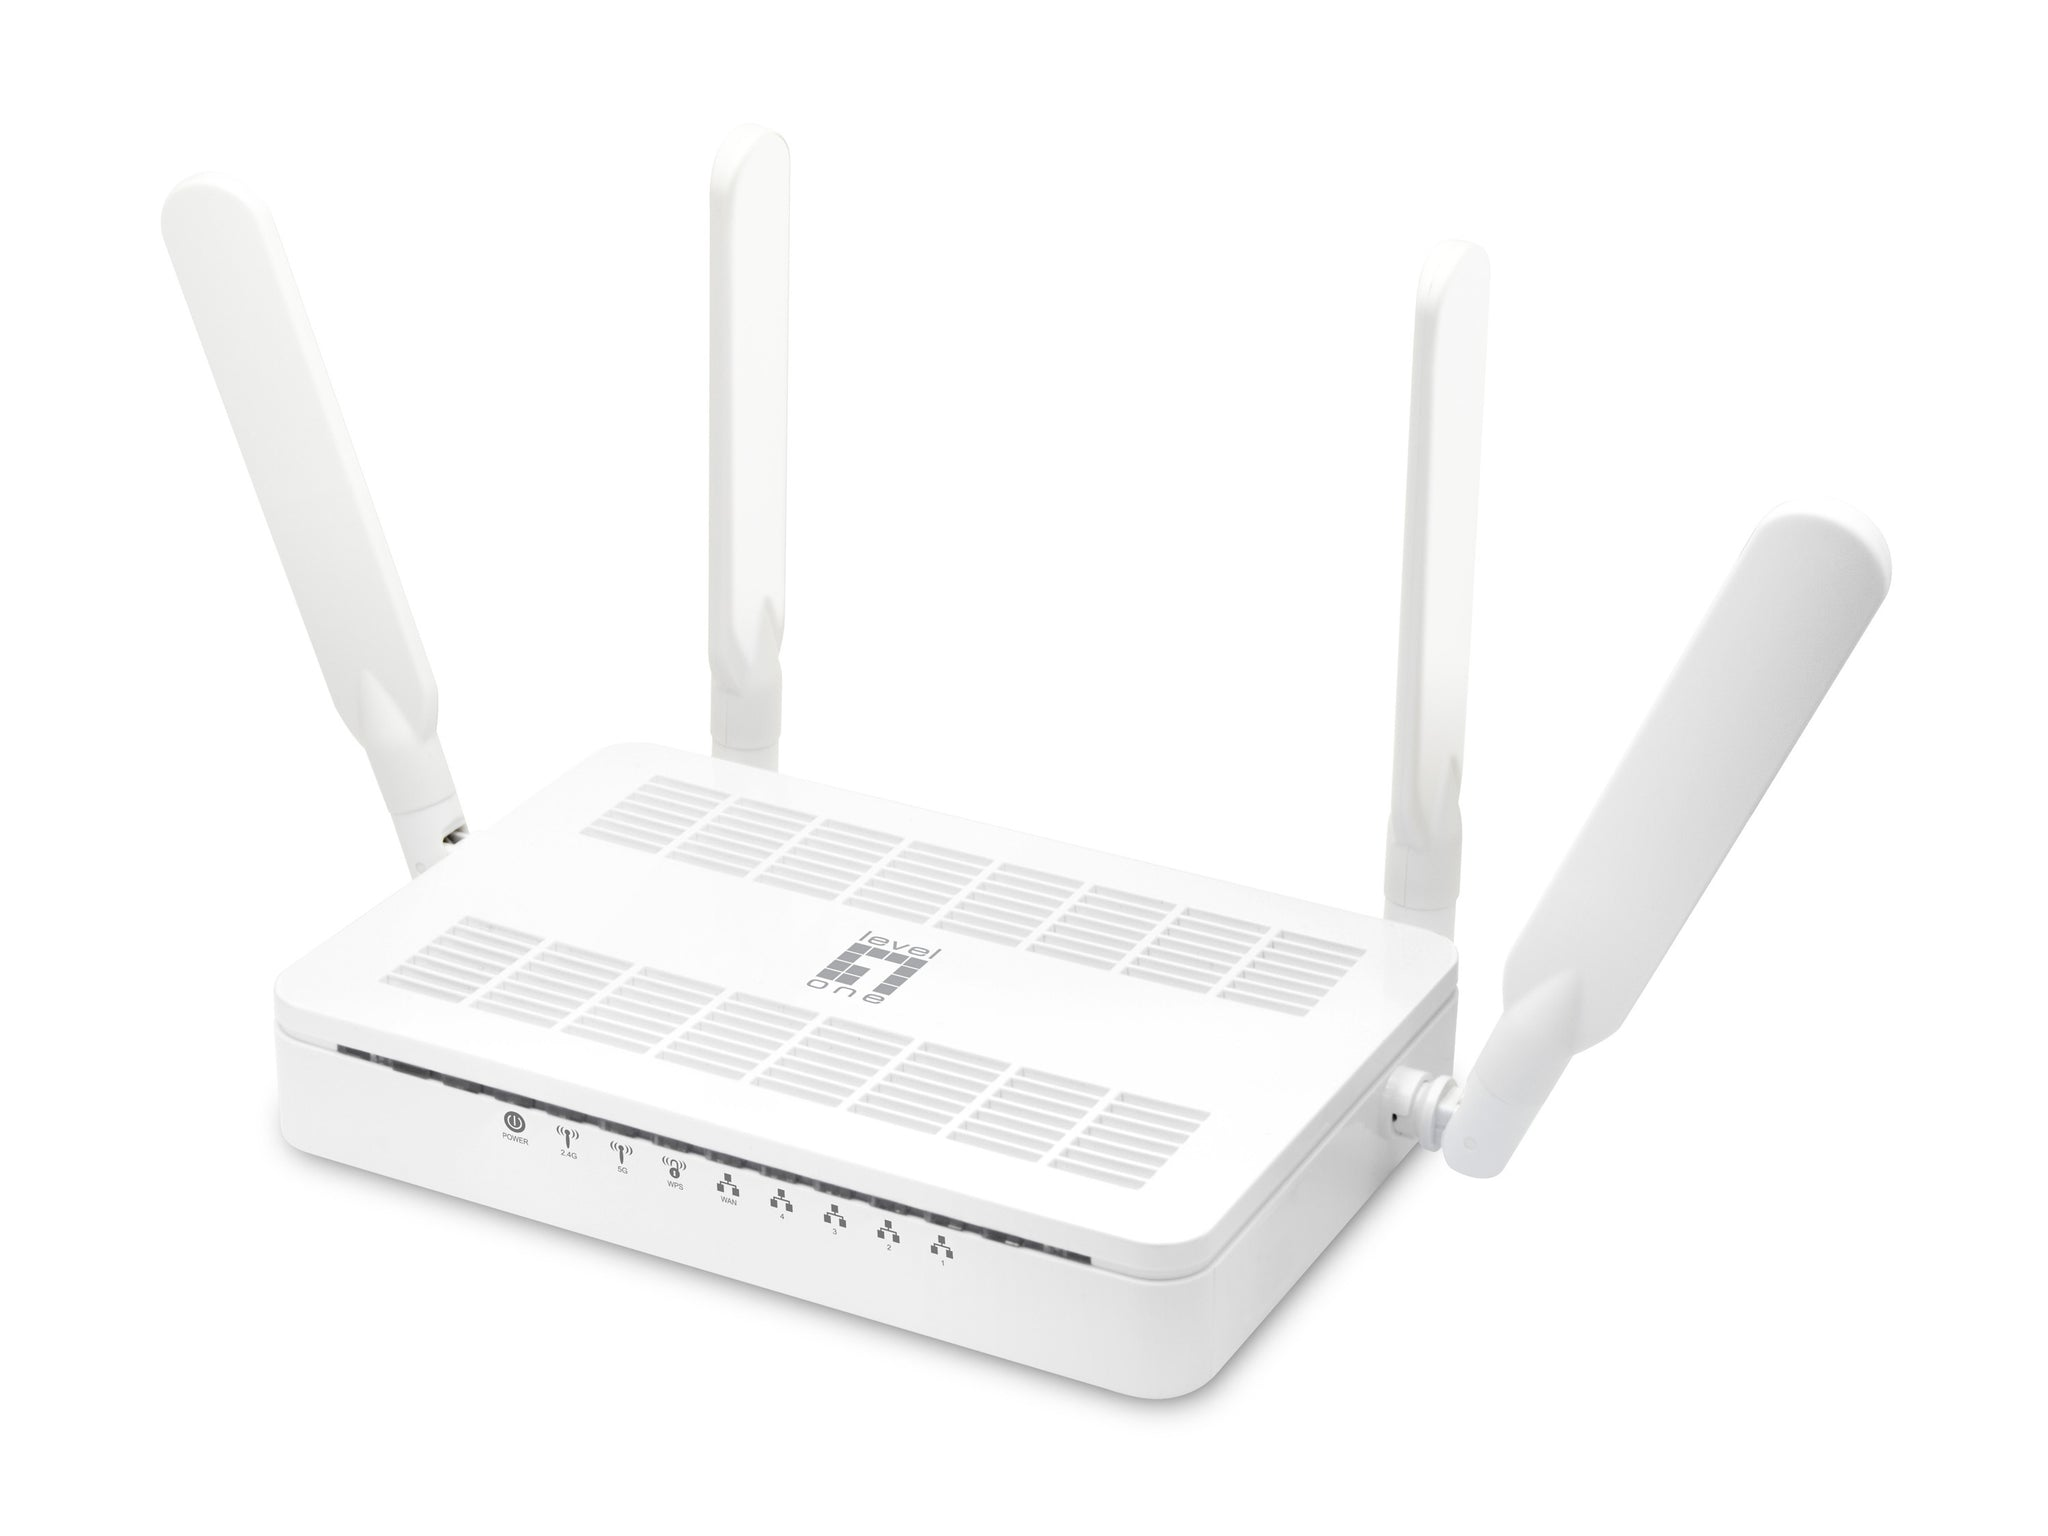 WGR-8032 AC1750 Dual Band Wireless Gigabit Router